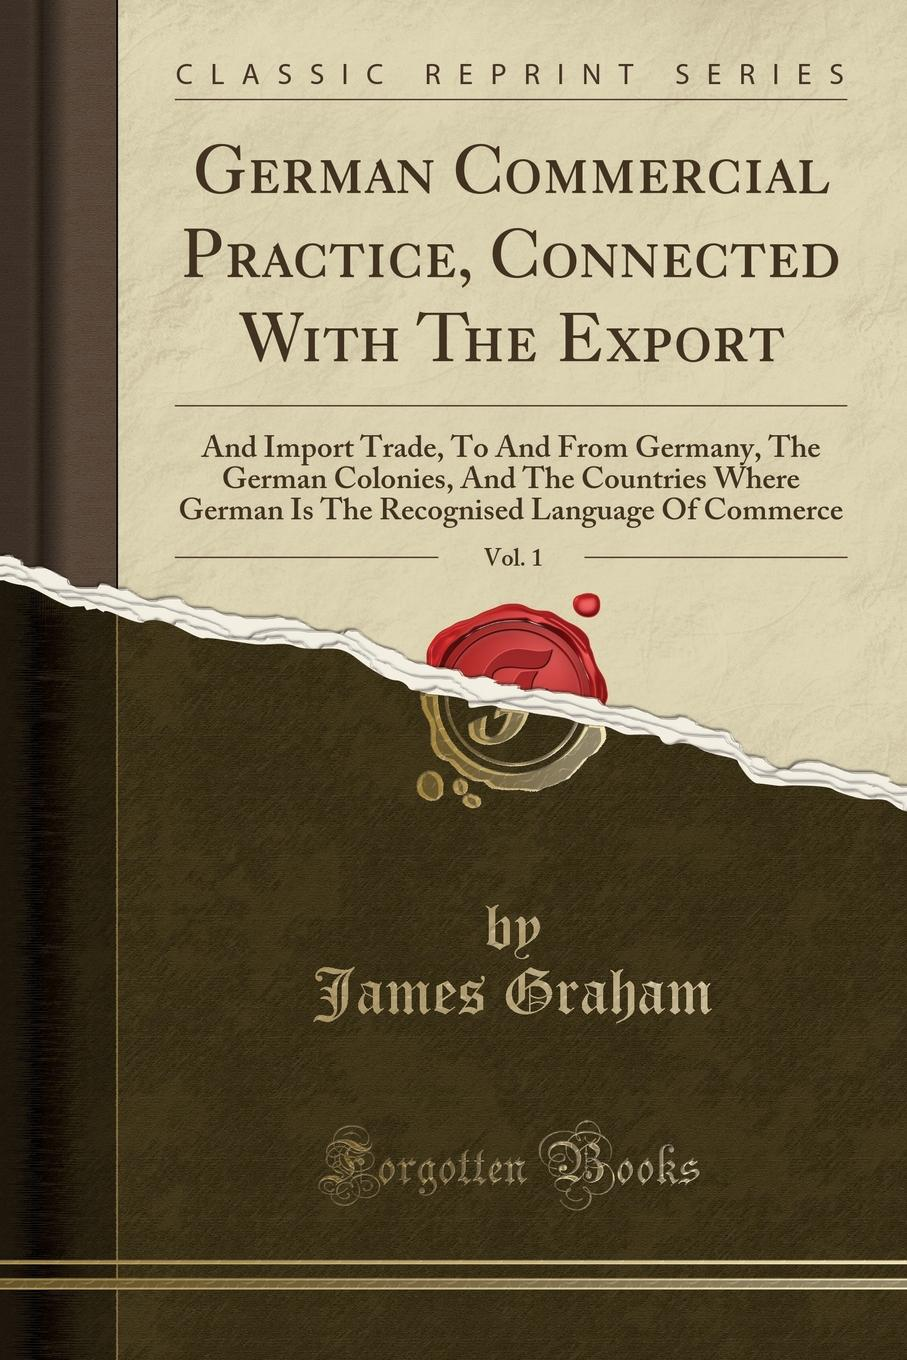 James Graham German Commercial Practice, Connected With The Export, Vol. 1. And Import Trade, To And From Germany, The German Colonies, And The Countries Where German Is The Recognised Language Of Commerce (Classic Reprint) darrel philip kaiser emigration to and from the german russian volga colonies